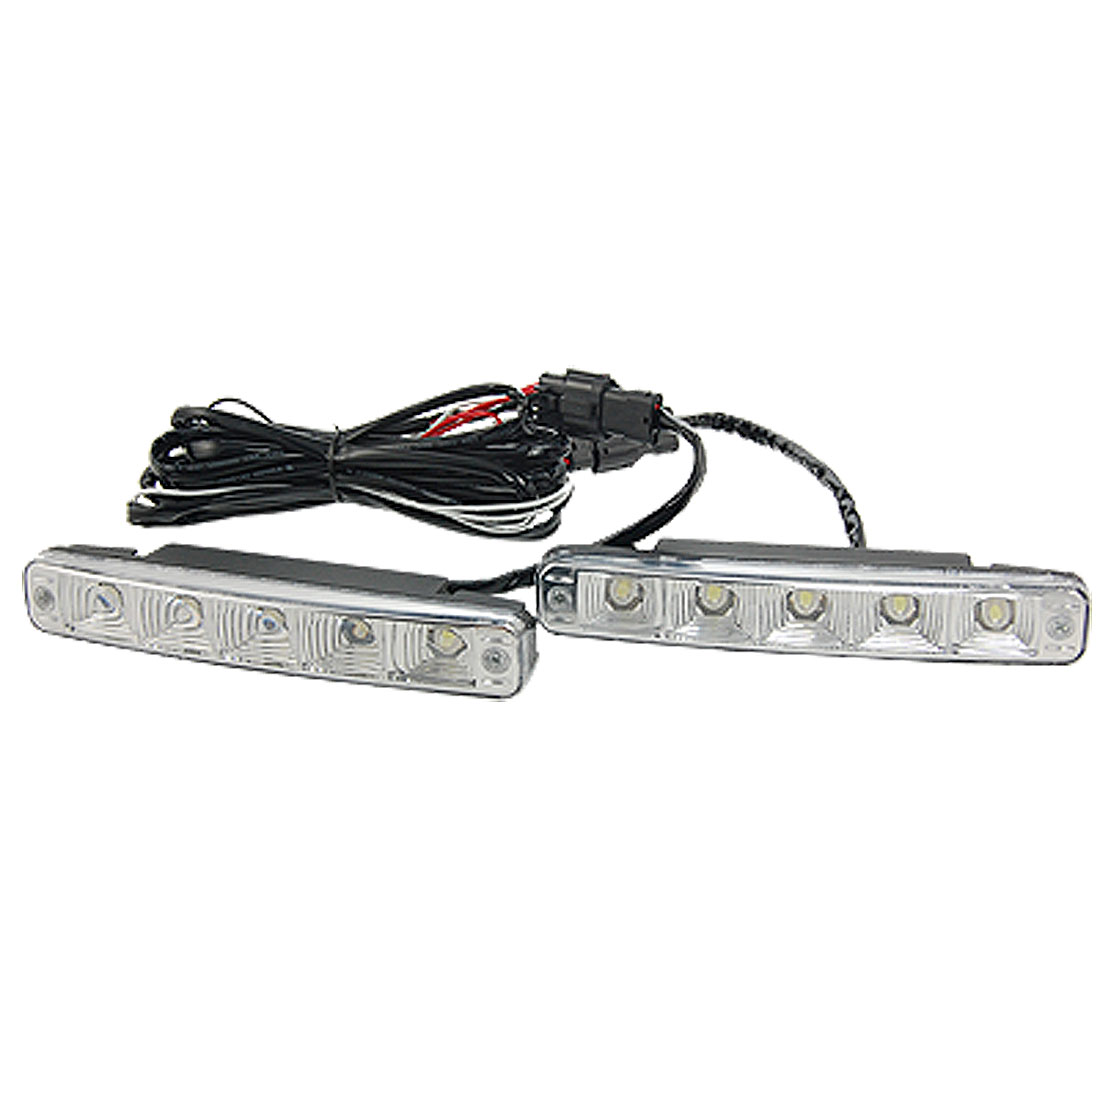 2 Pcs Car 5W White 5 LED Daytime Running Light DRL Fog Day Driving Daylight